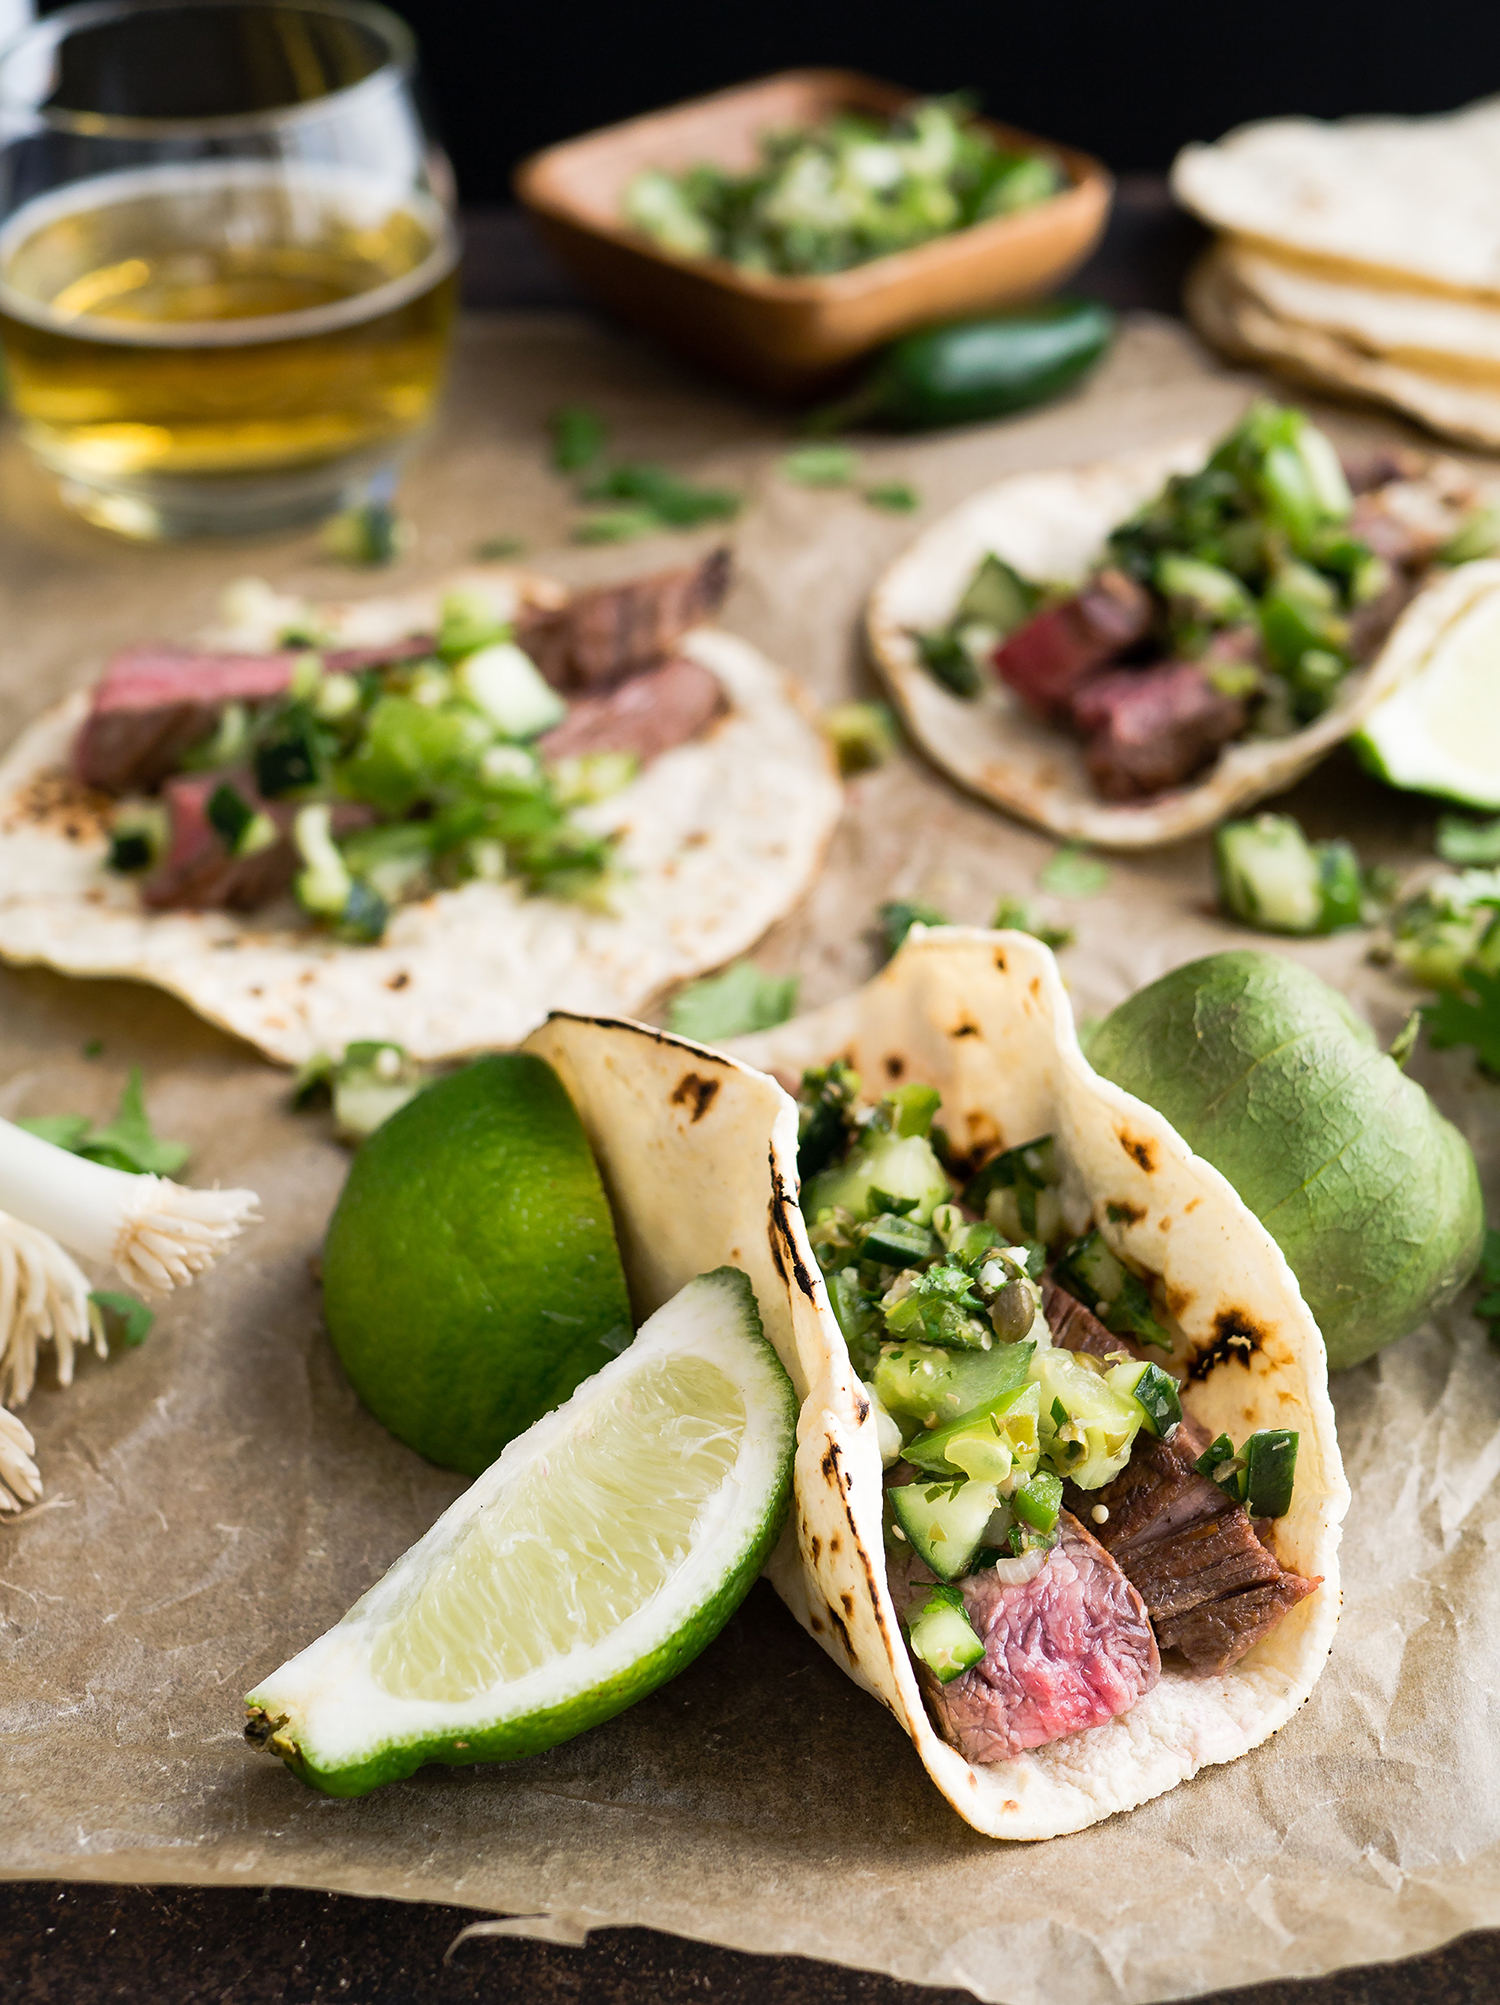 Mexican Tacos - mouth watering w/ lime, meat, and tortillas